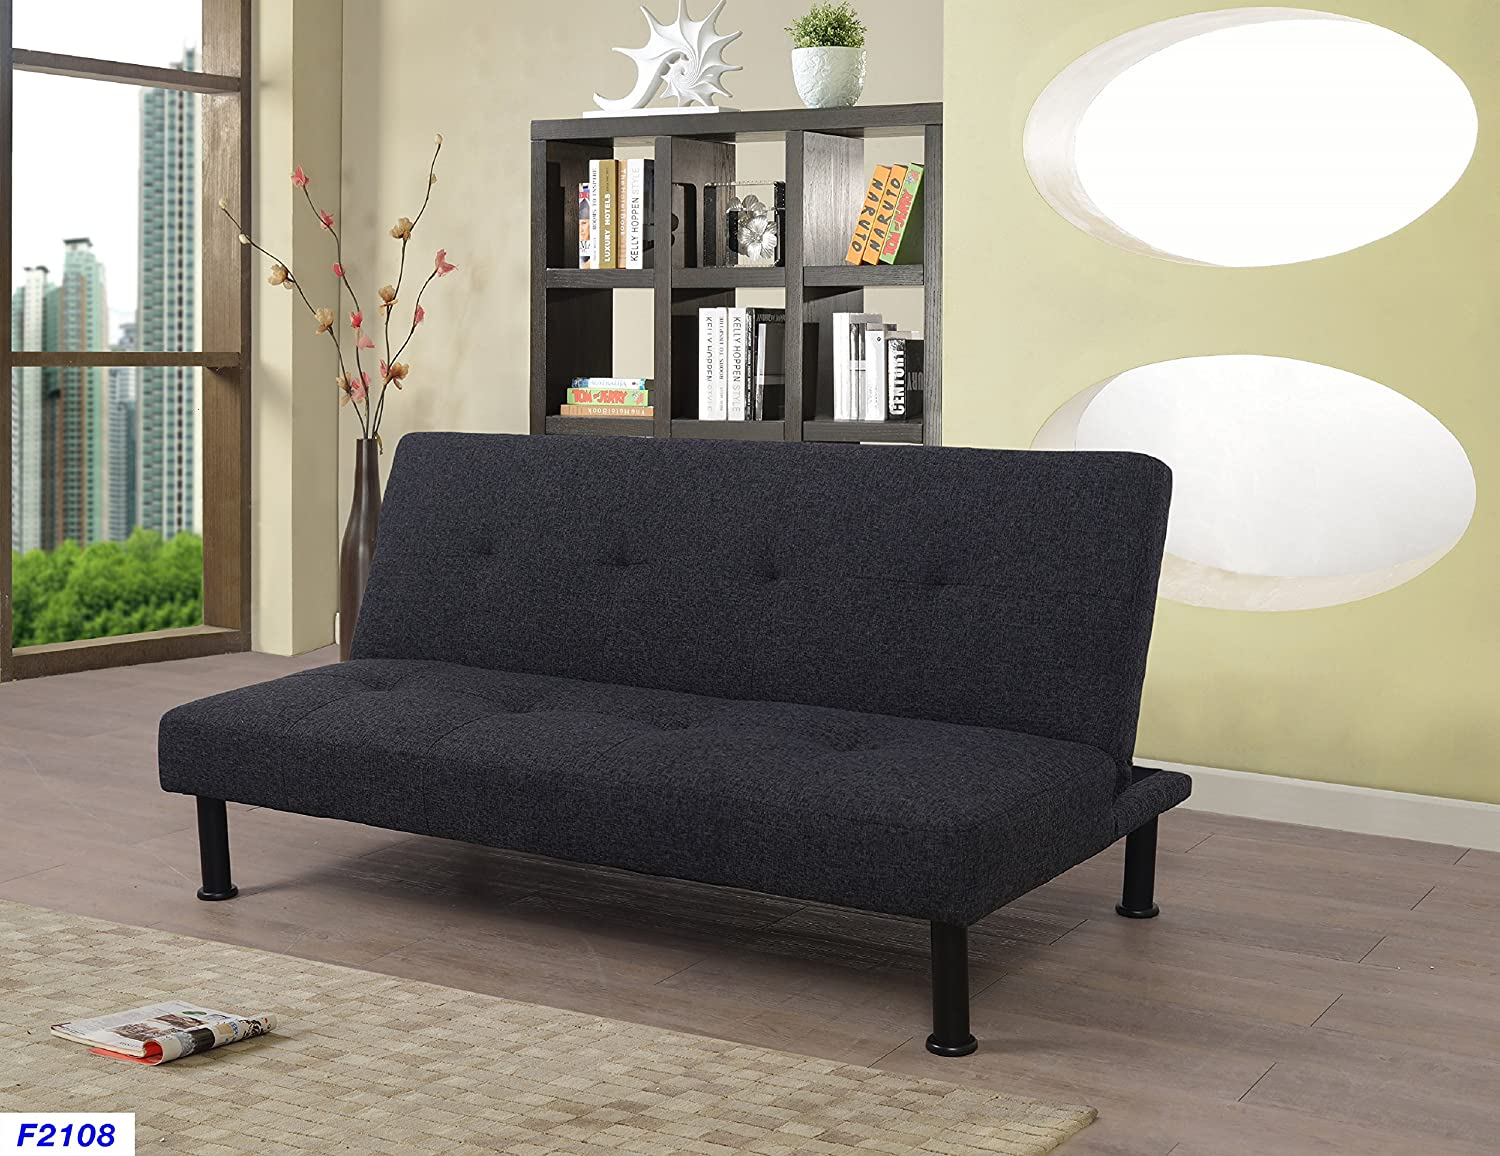 Beverly Fine Furniture Convertible Futon Sofa Bed